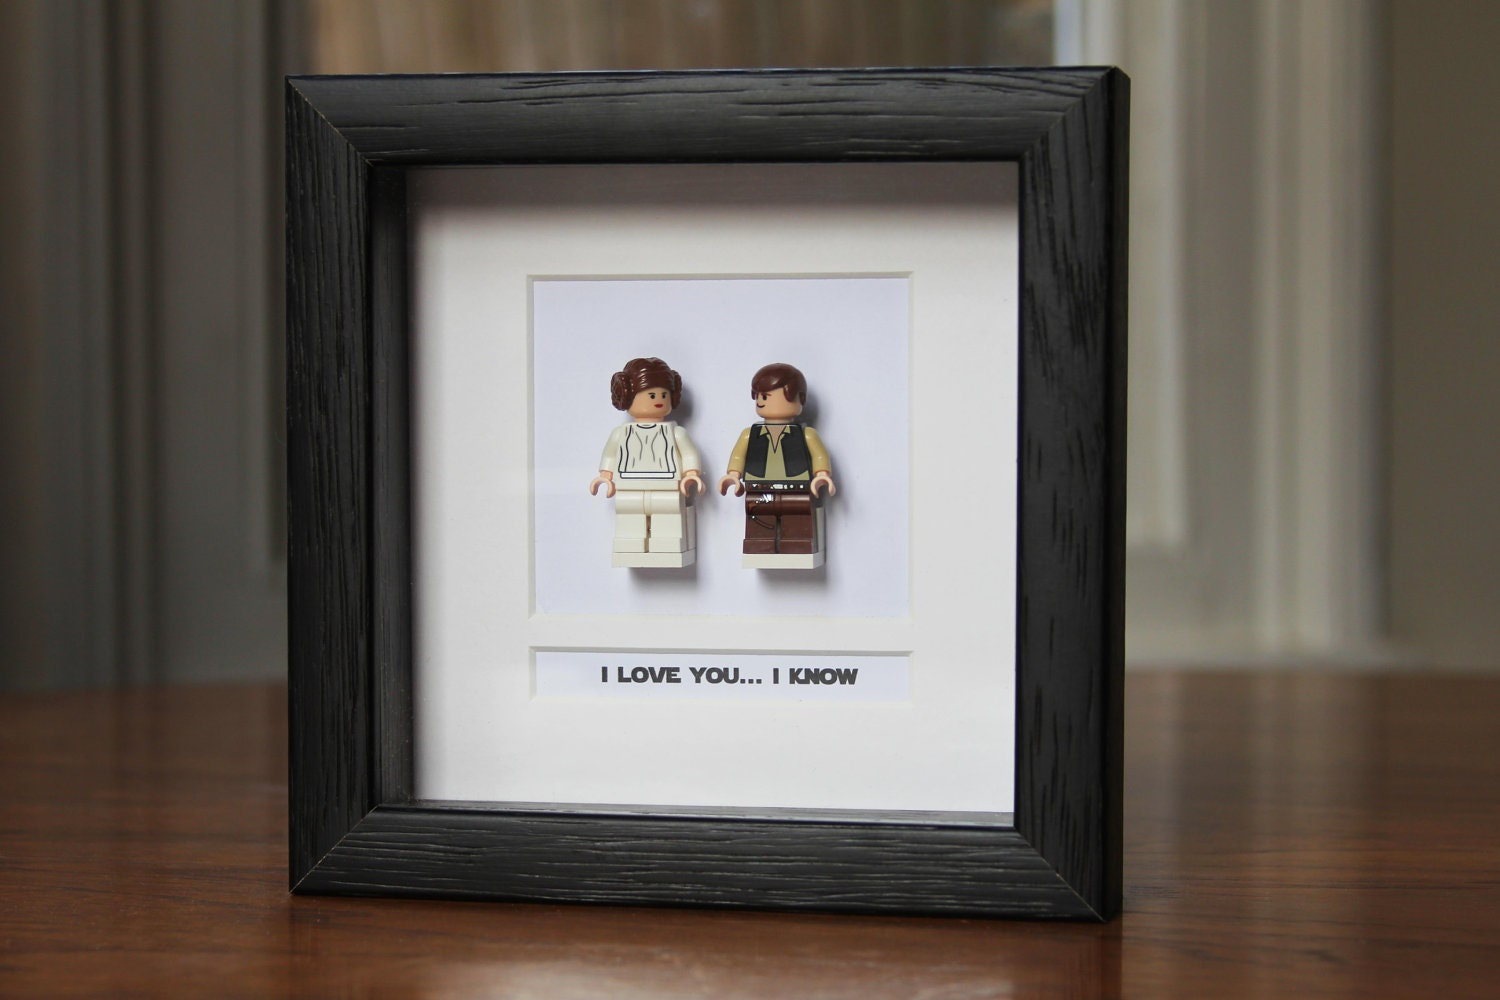 Star Wars Framed Mini Figures Han Amp Leia Made From Lego